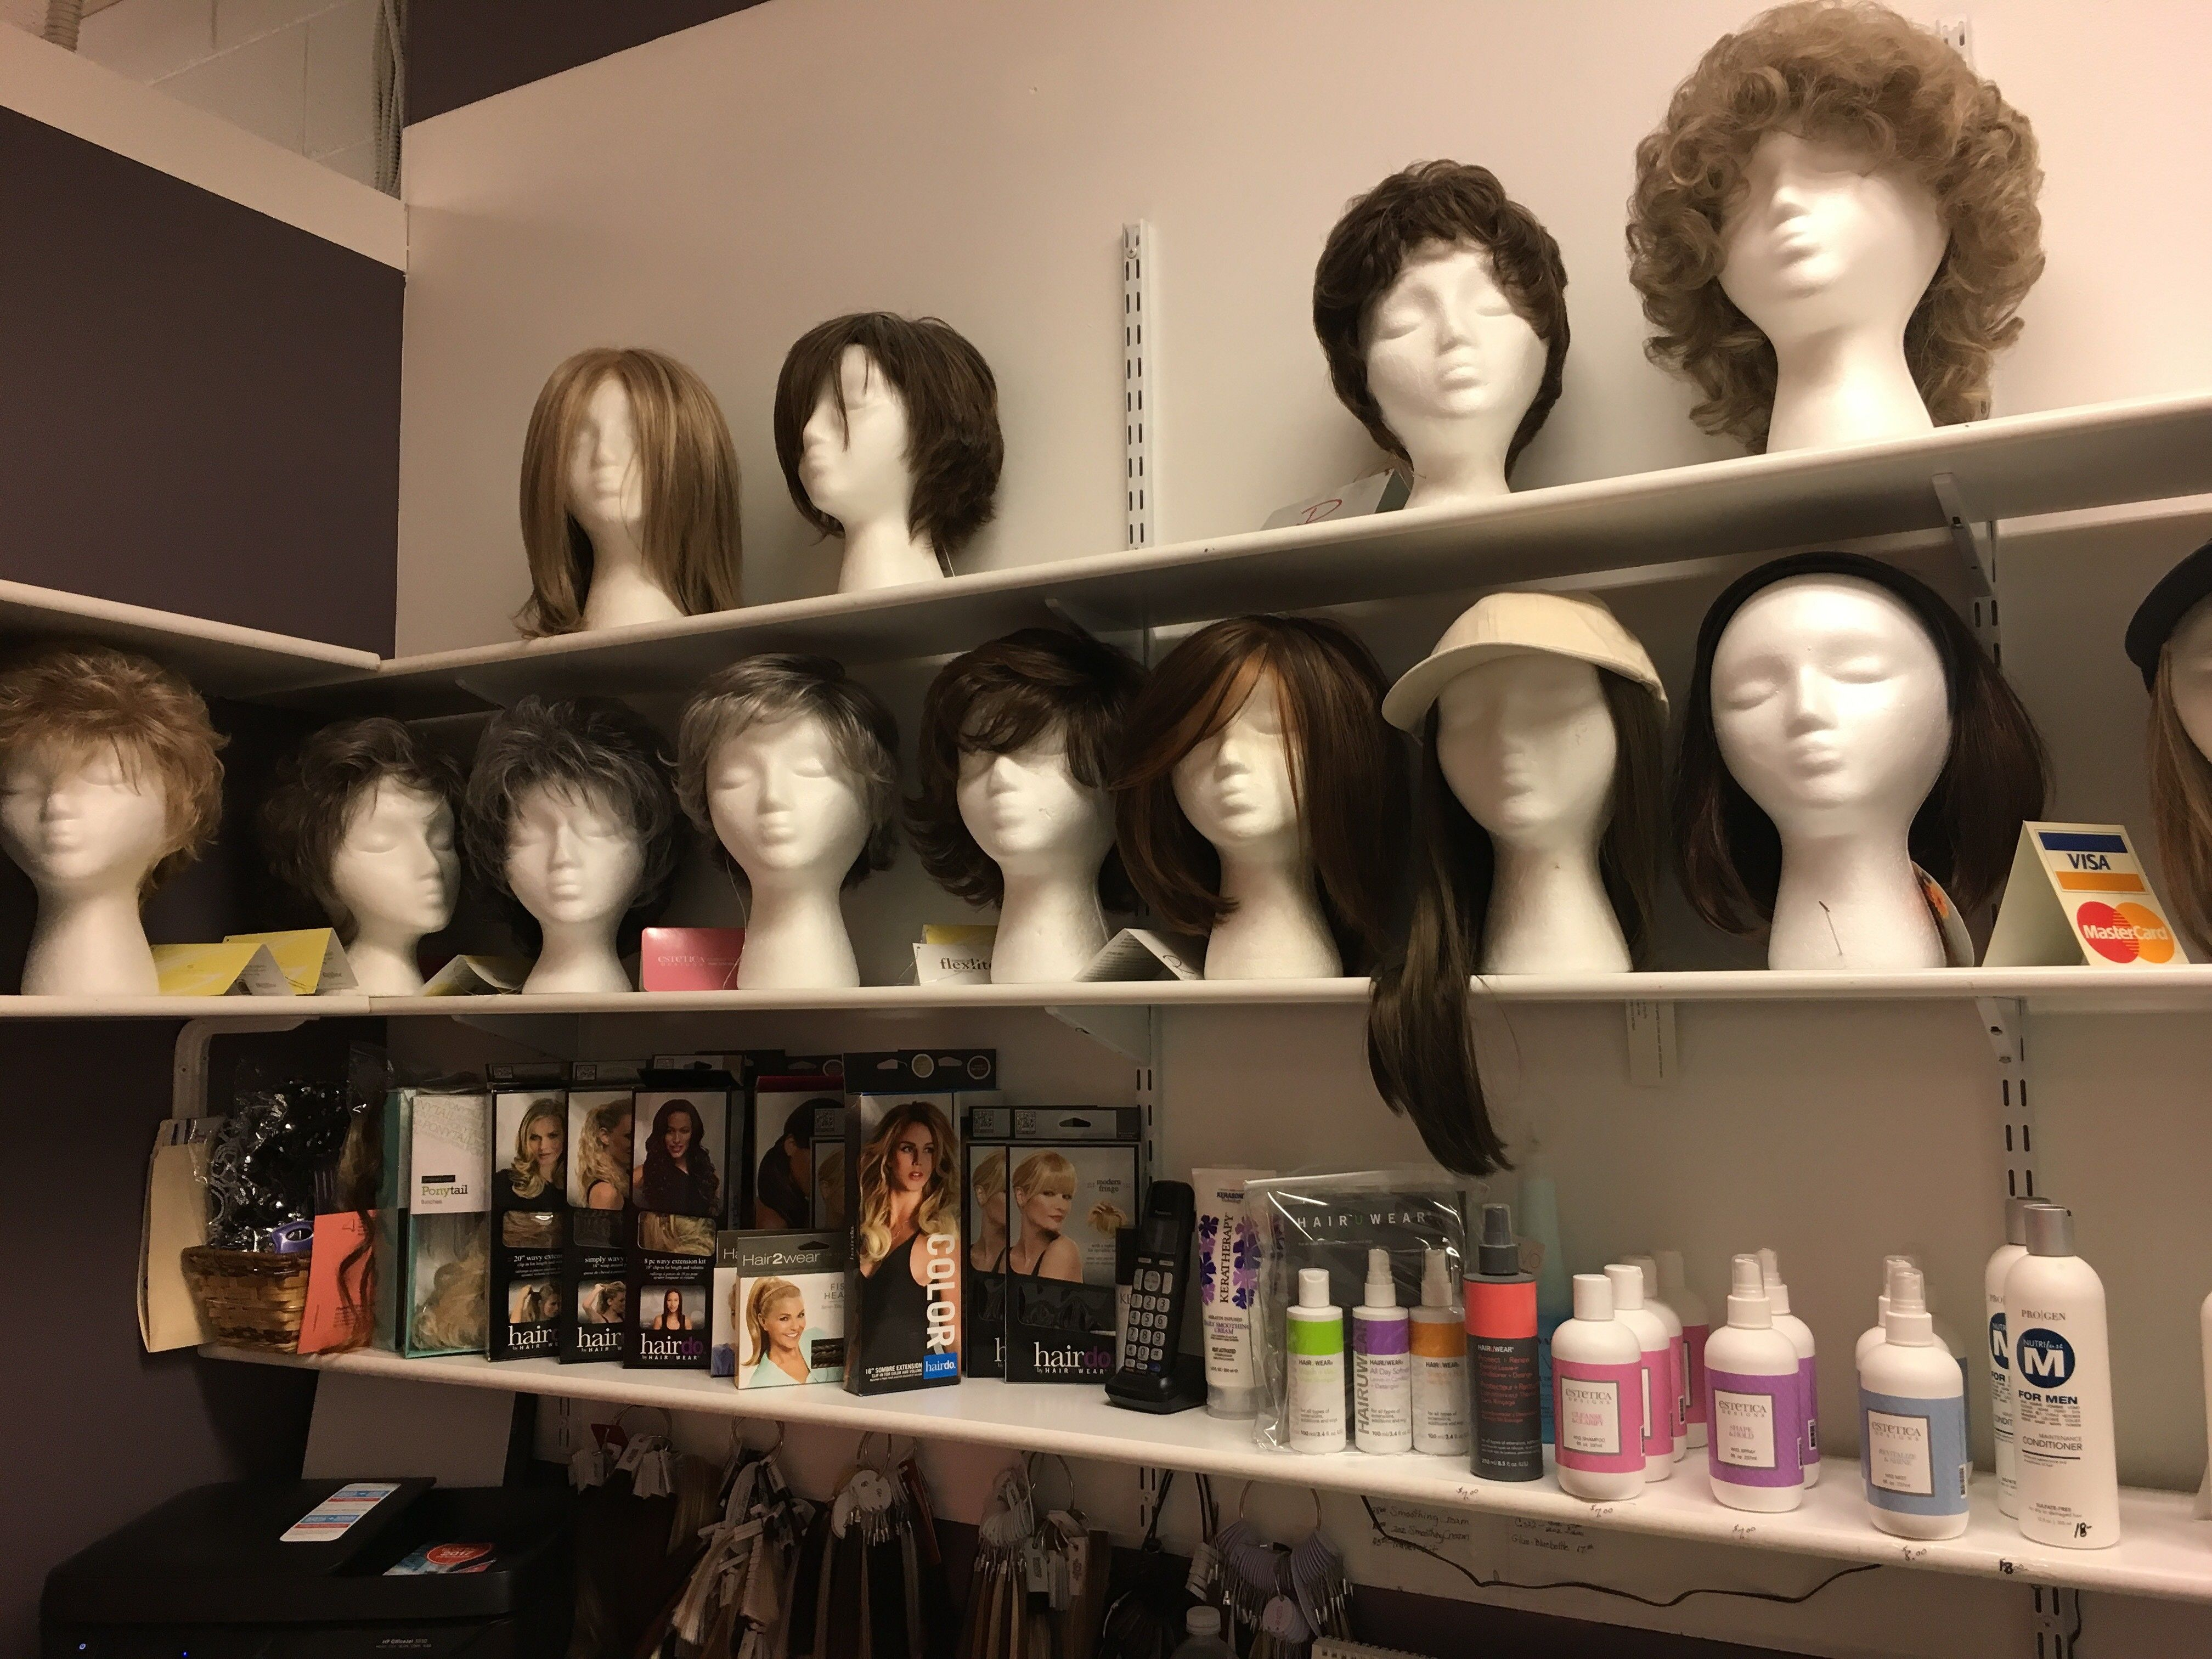 All About Hair image 10